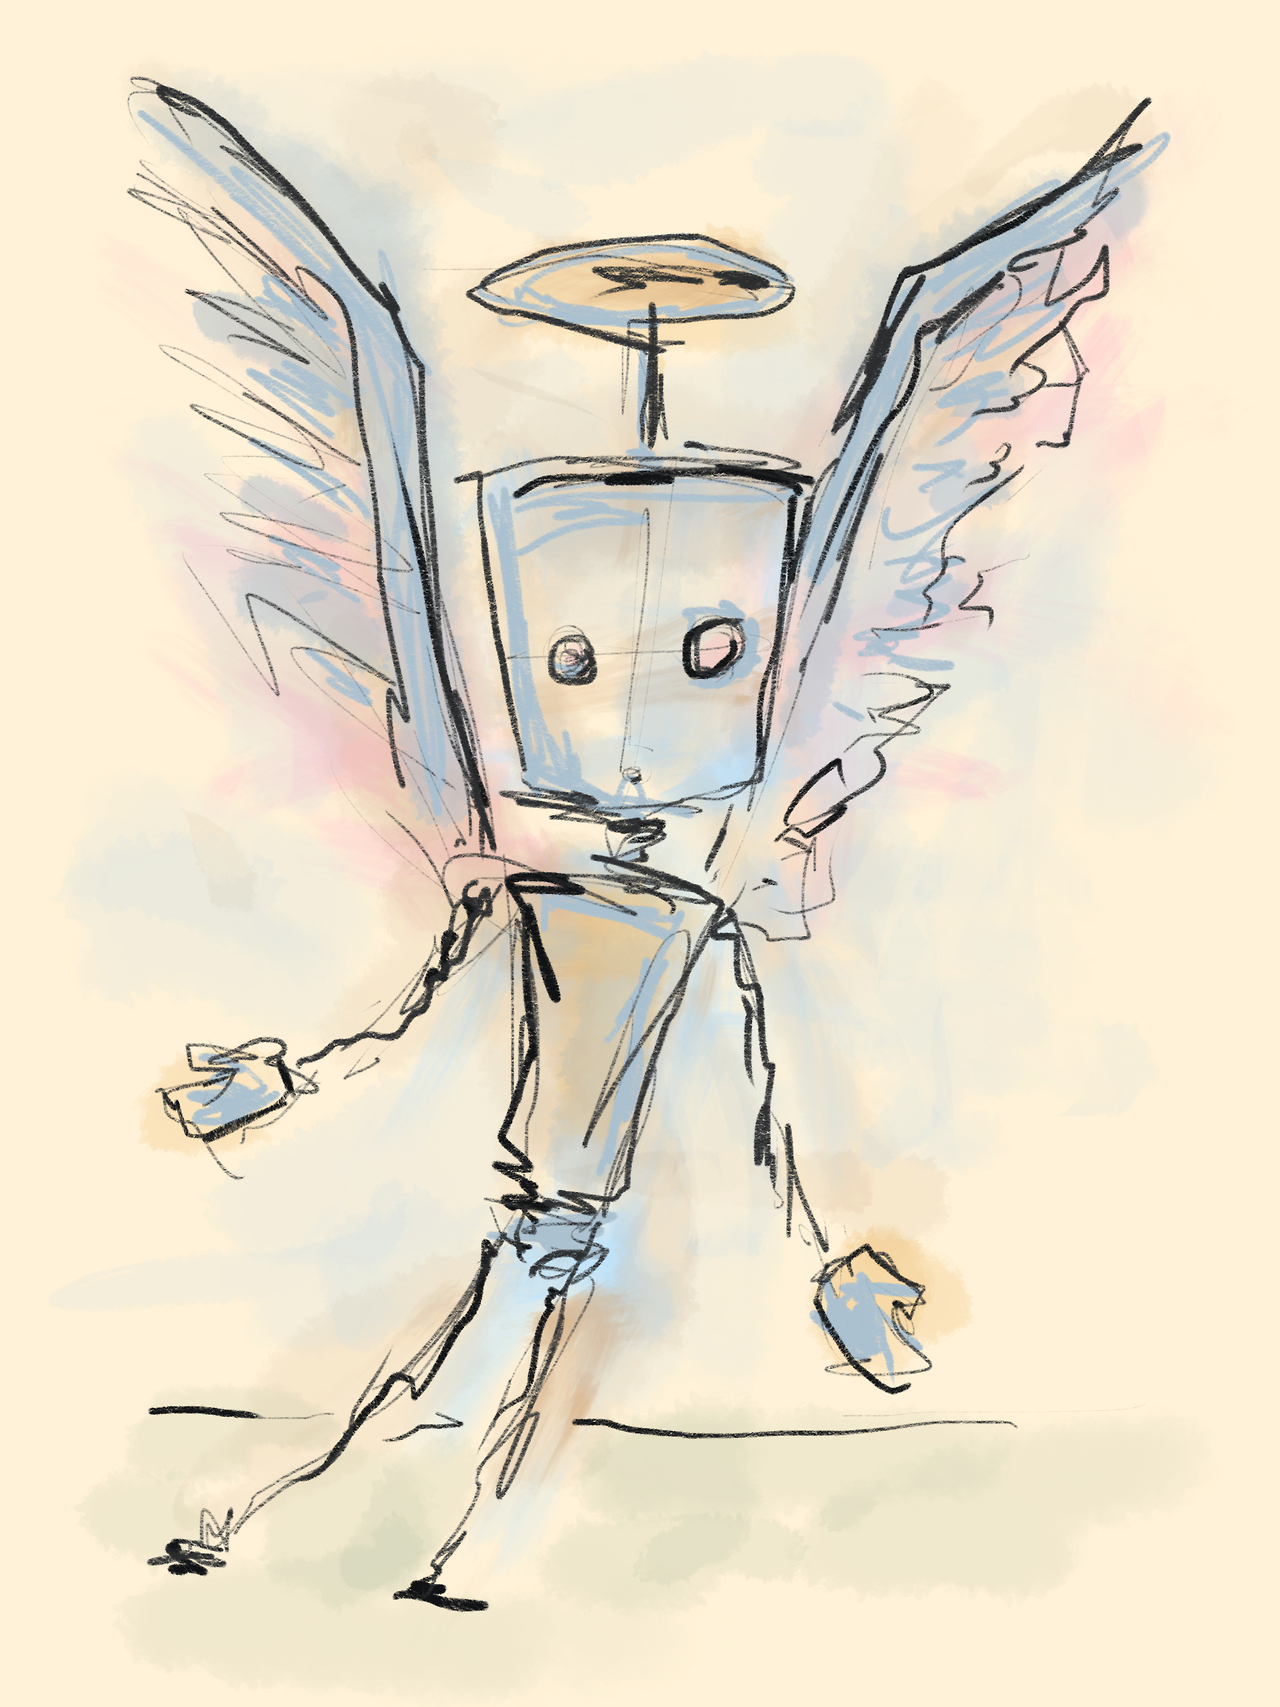 Godbot in Flight. I'm still playing around with the viability of the ipad as a creation tool. There's a lot I like about it. A few things I wish were a bit different.